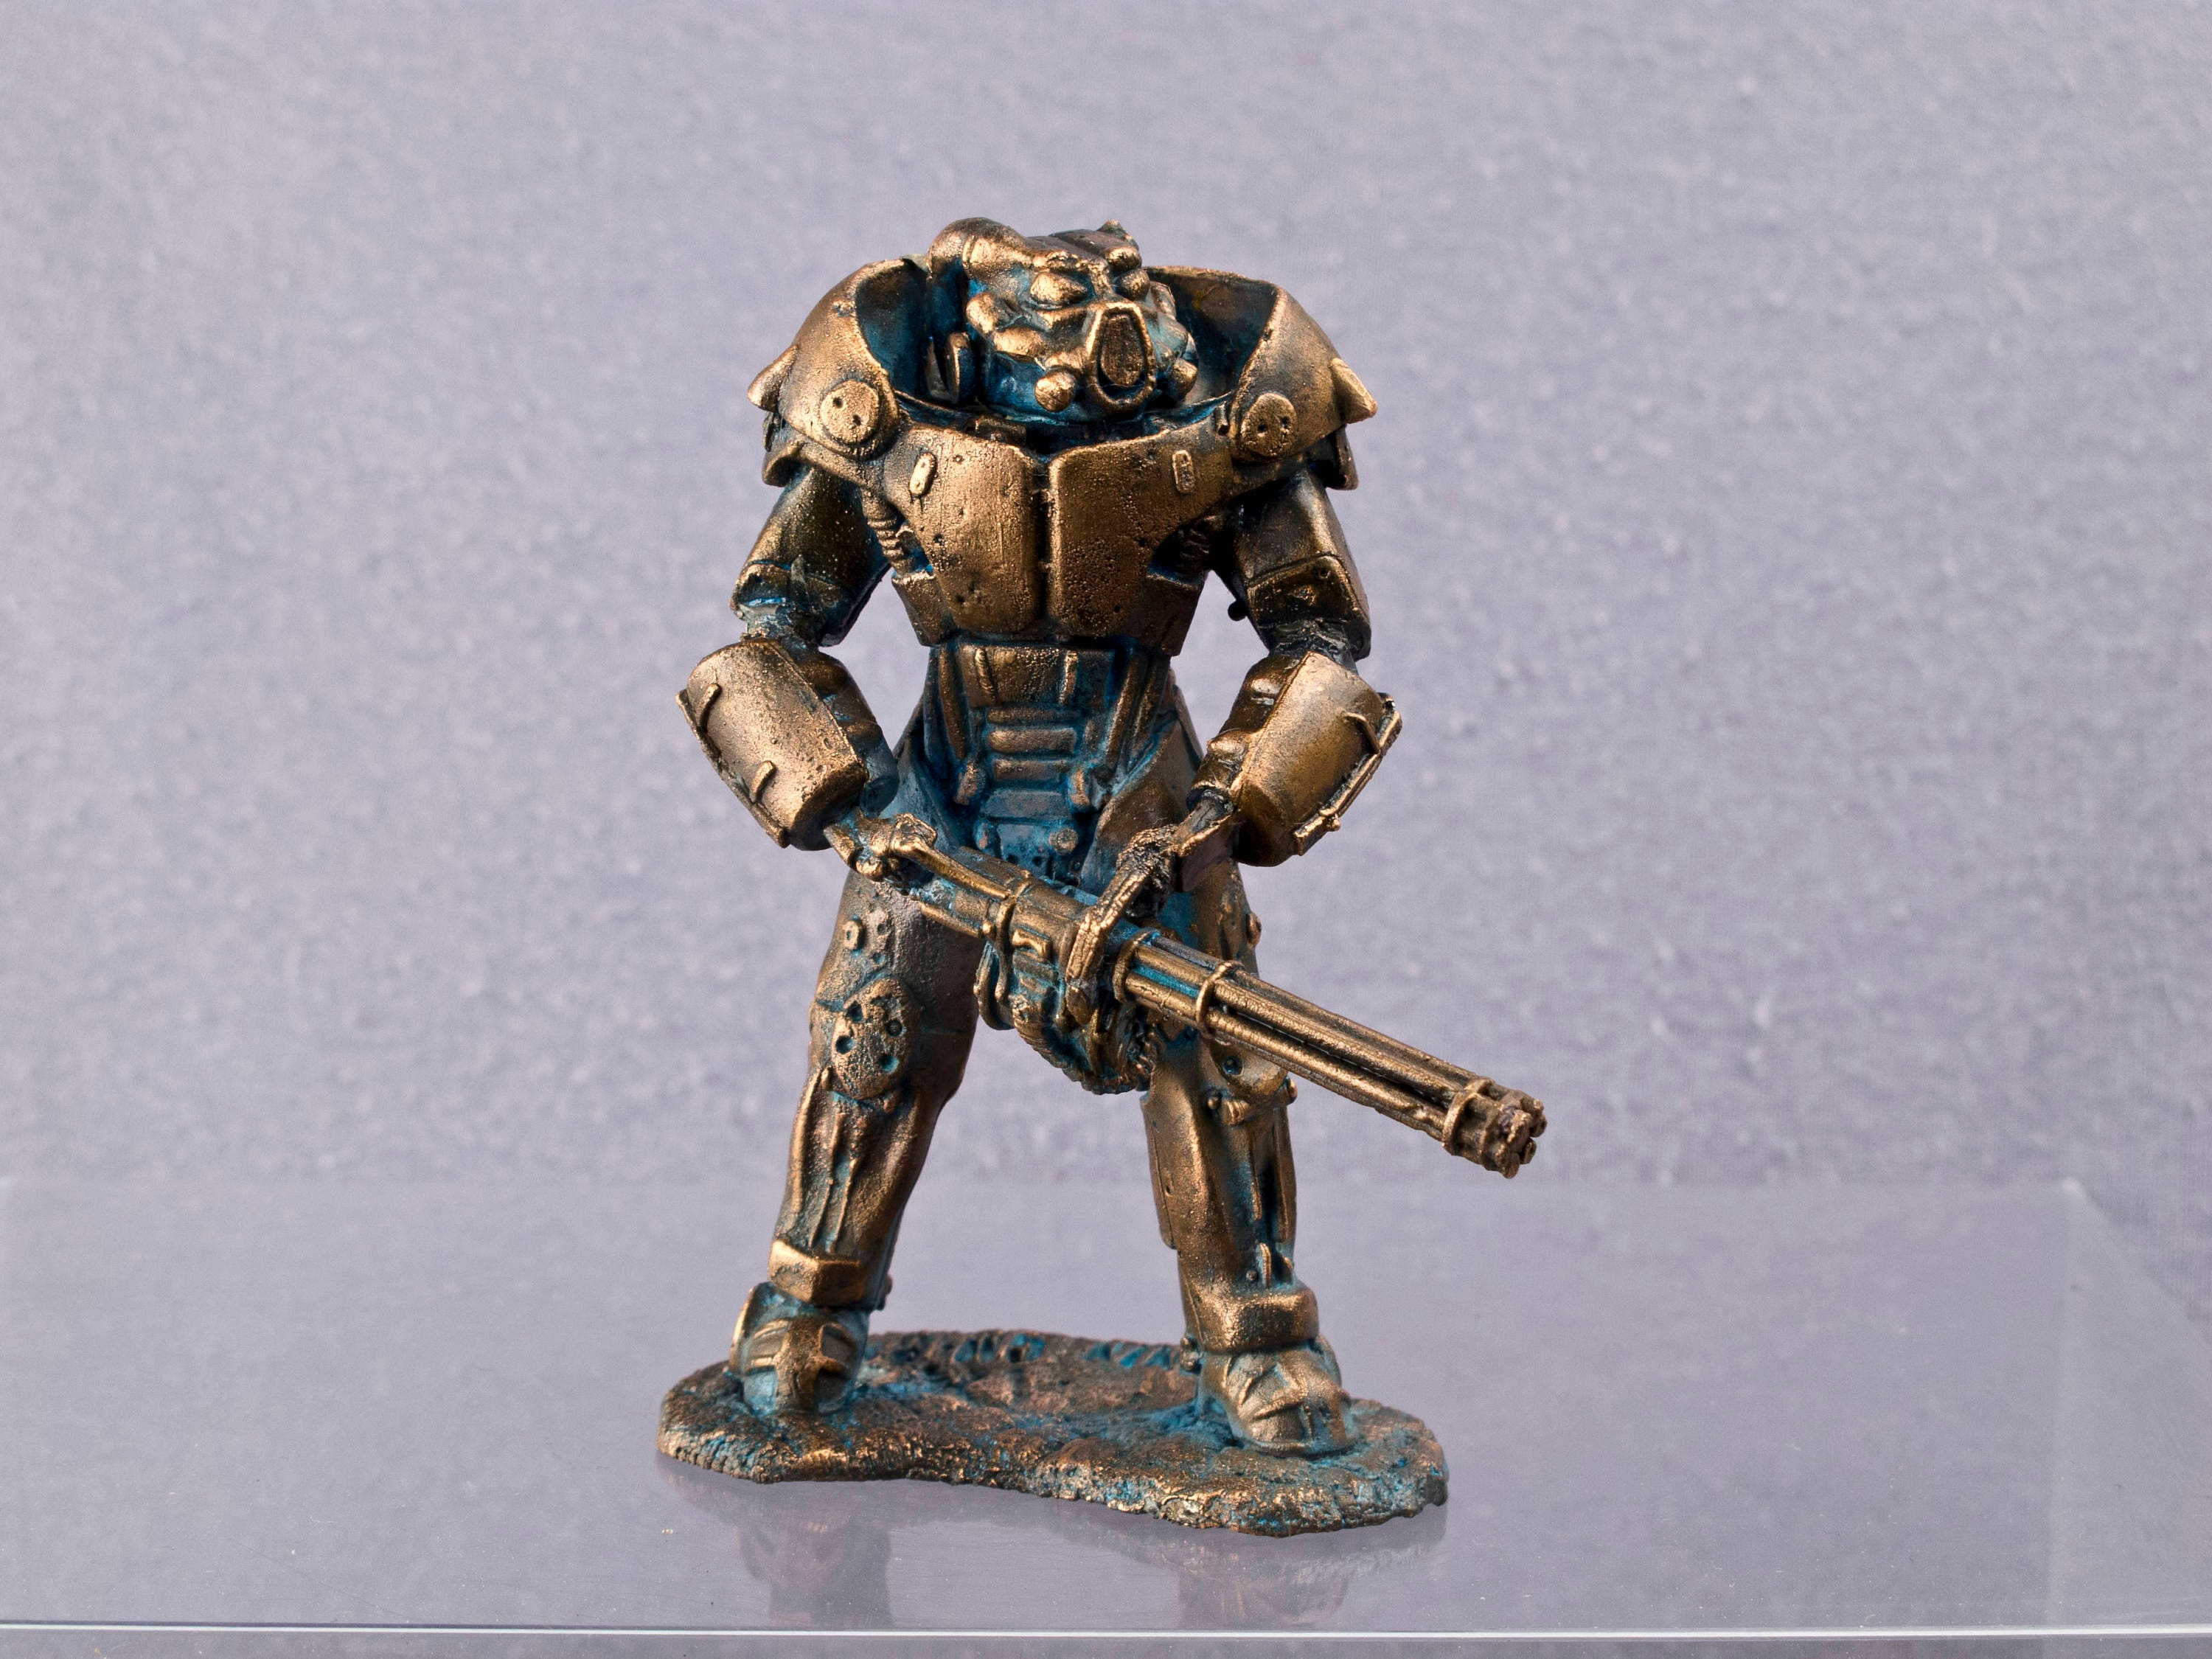 Power armor exoskeleton model mm copper figur Сollection